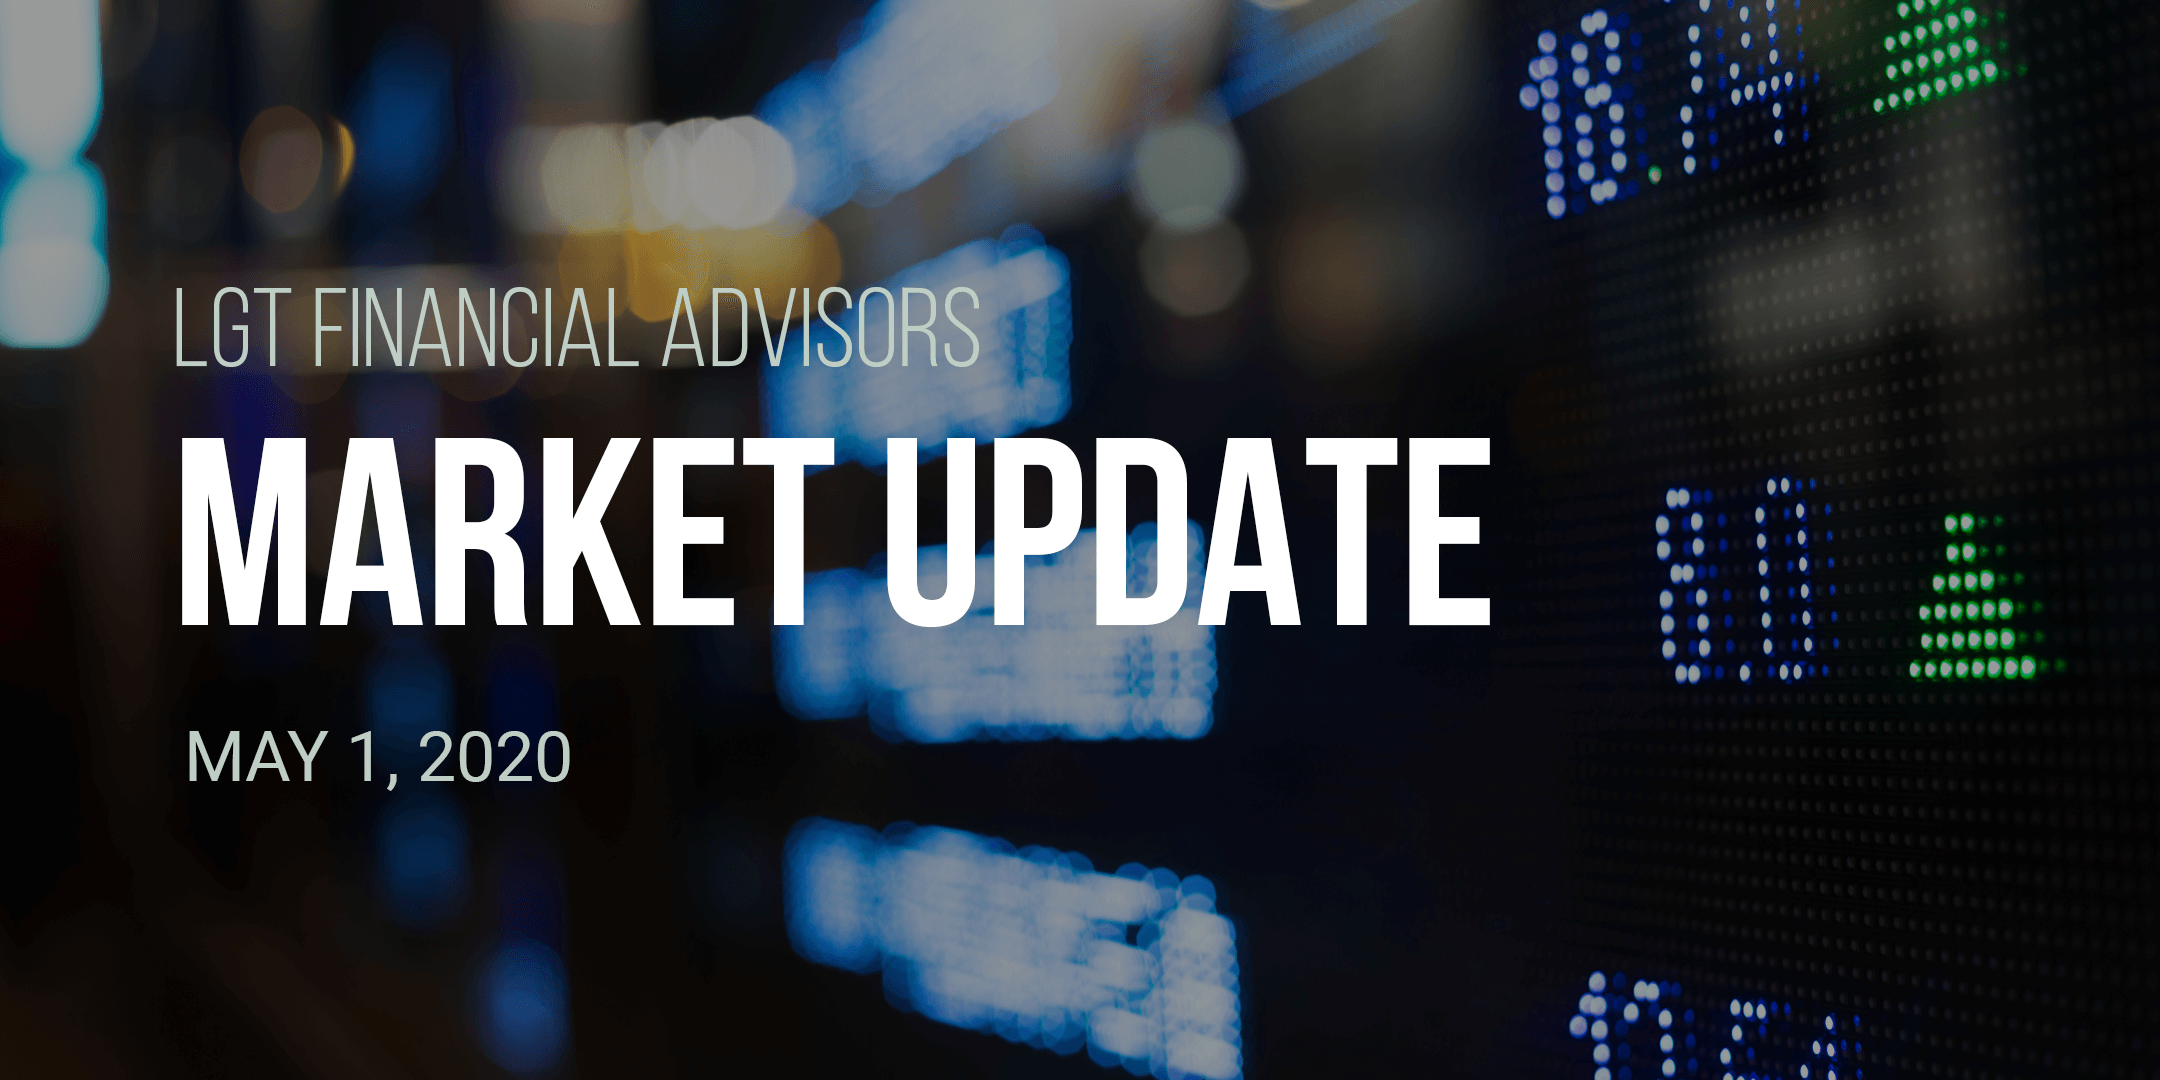 FA Market Update - May 1, 2020